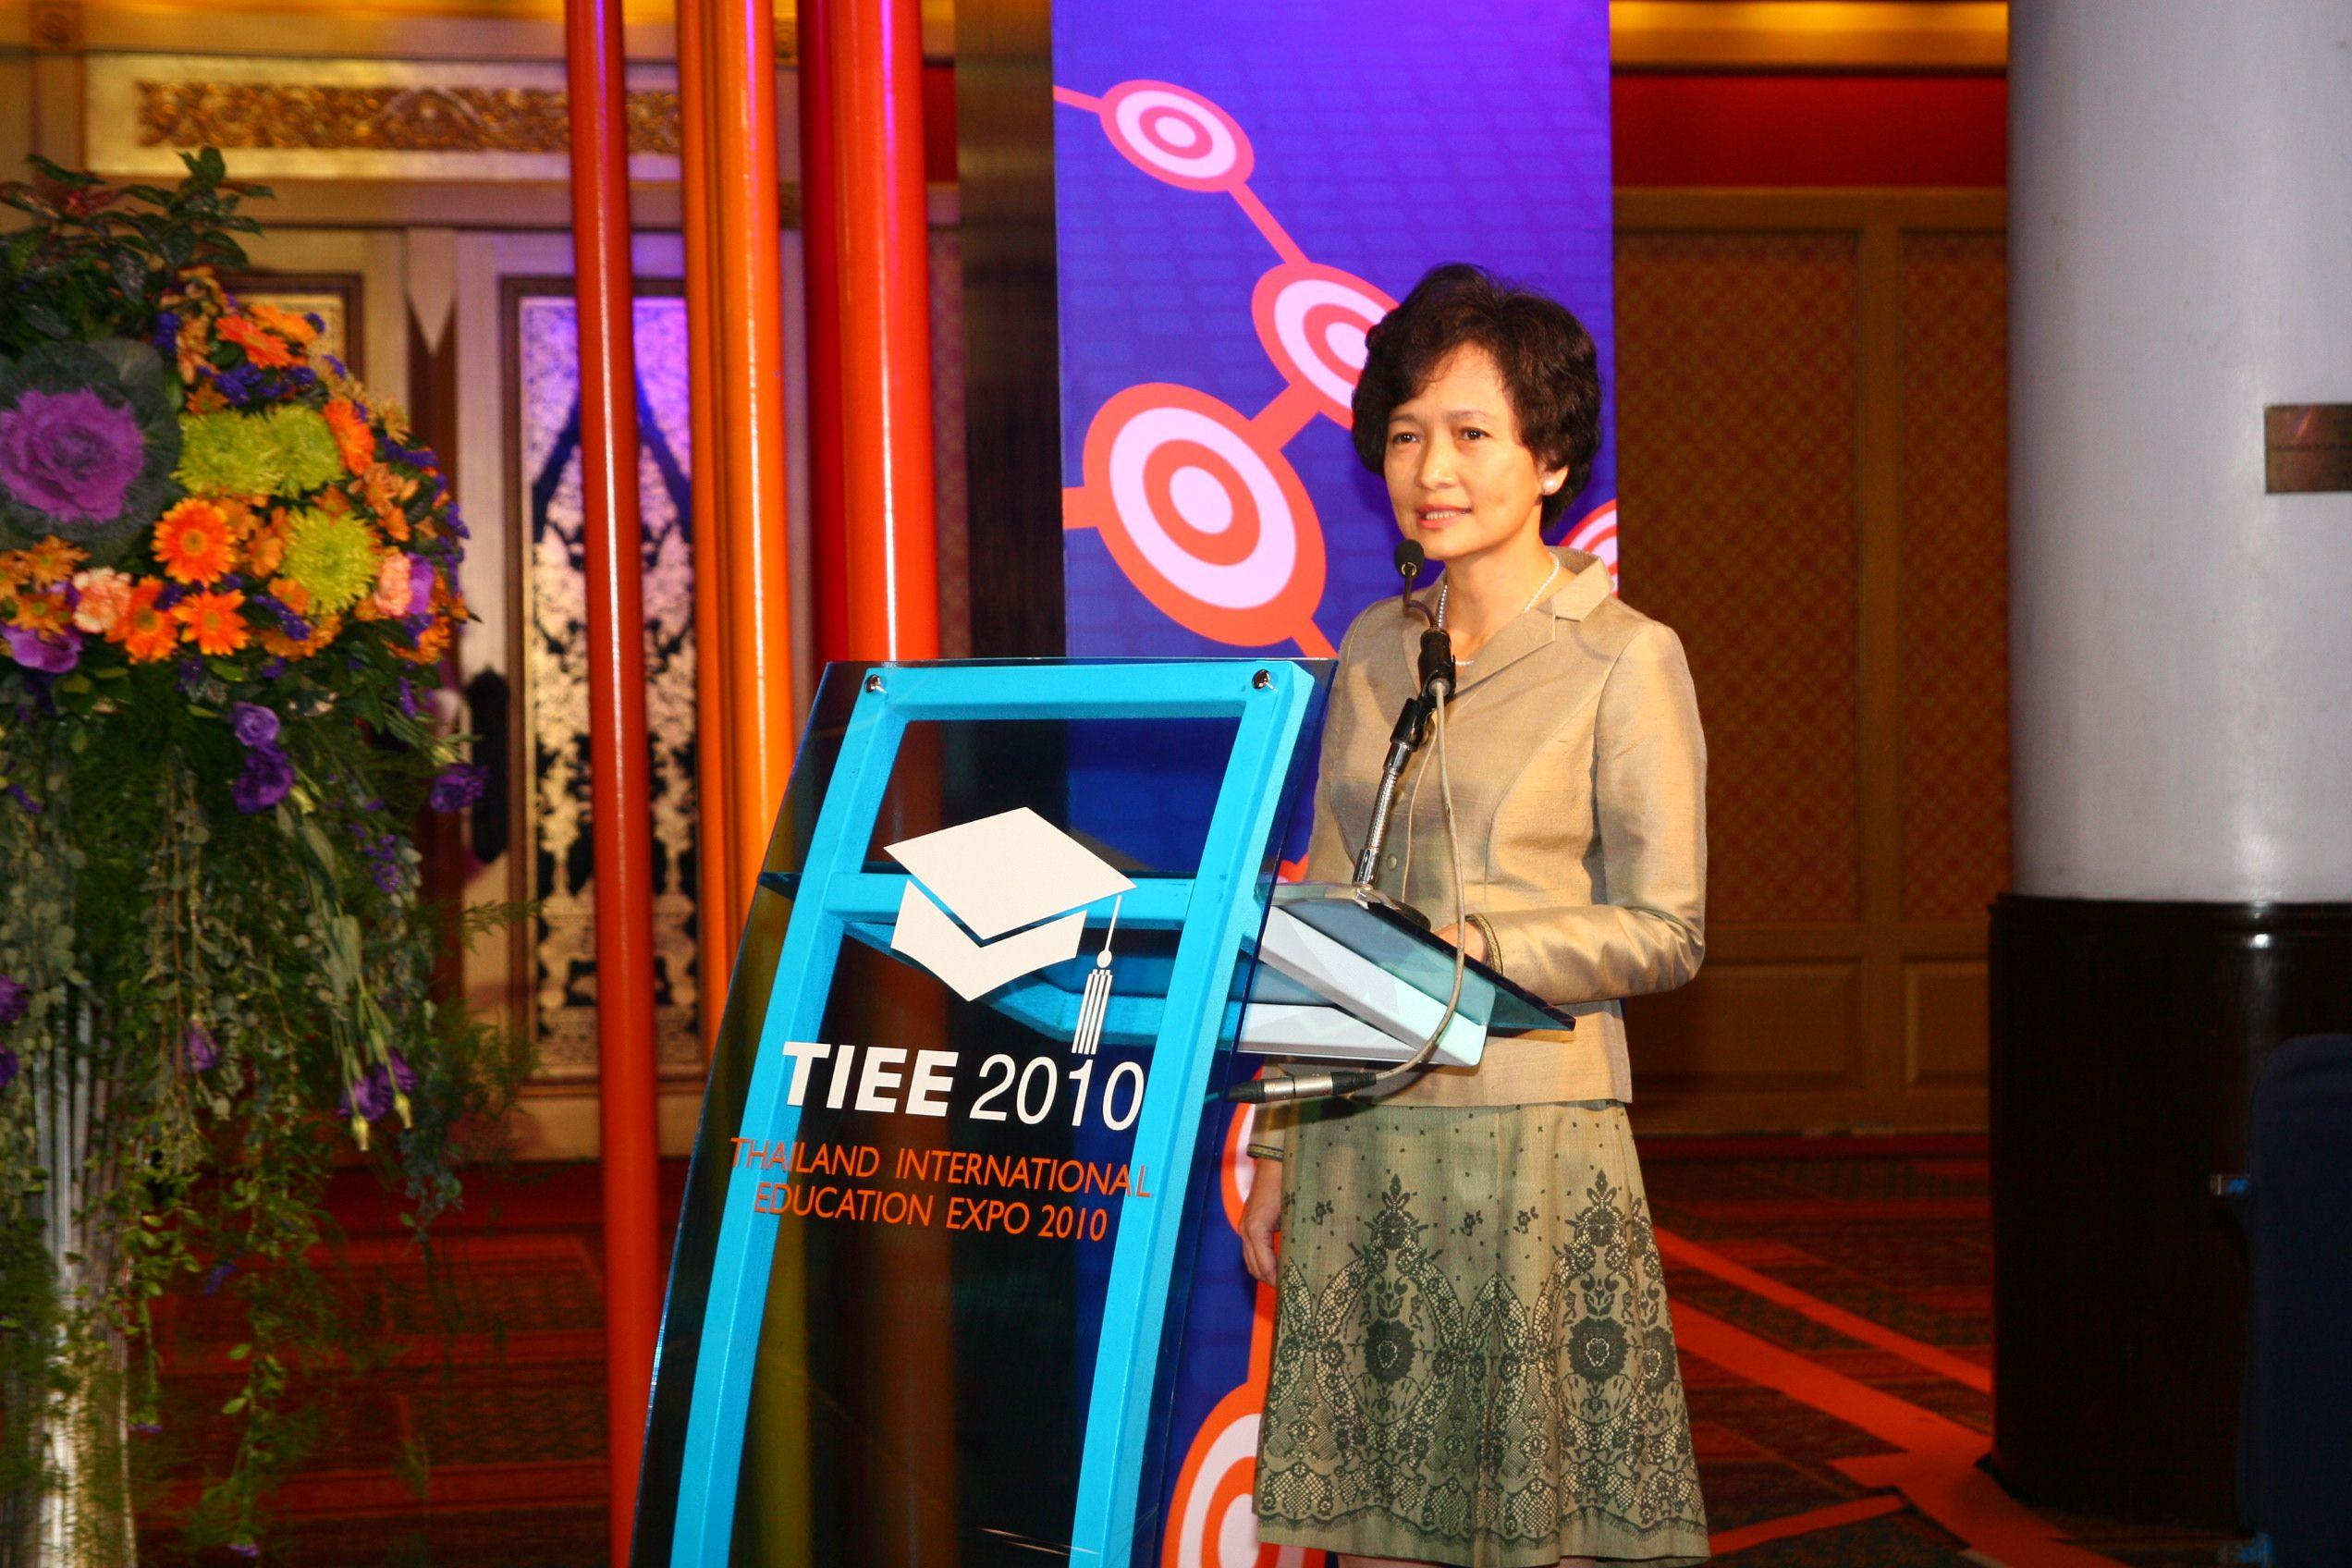 Thailand's Education Sector Is Ready for  Market Expansion